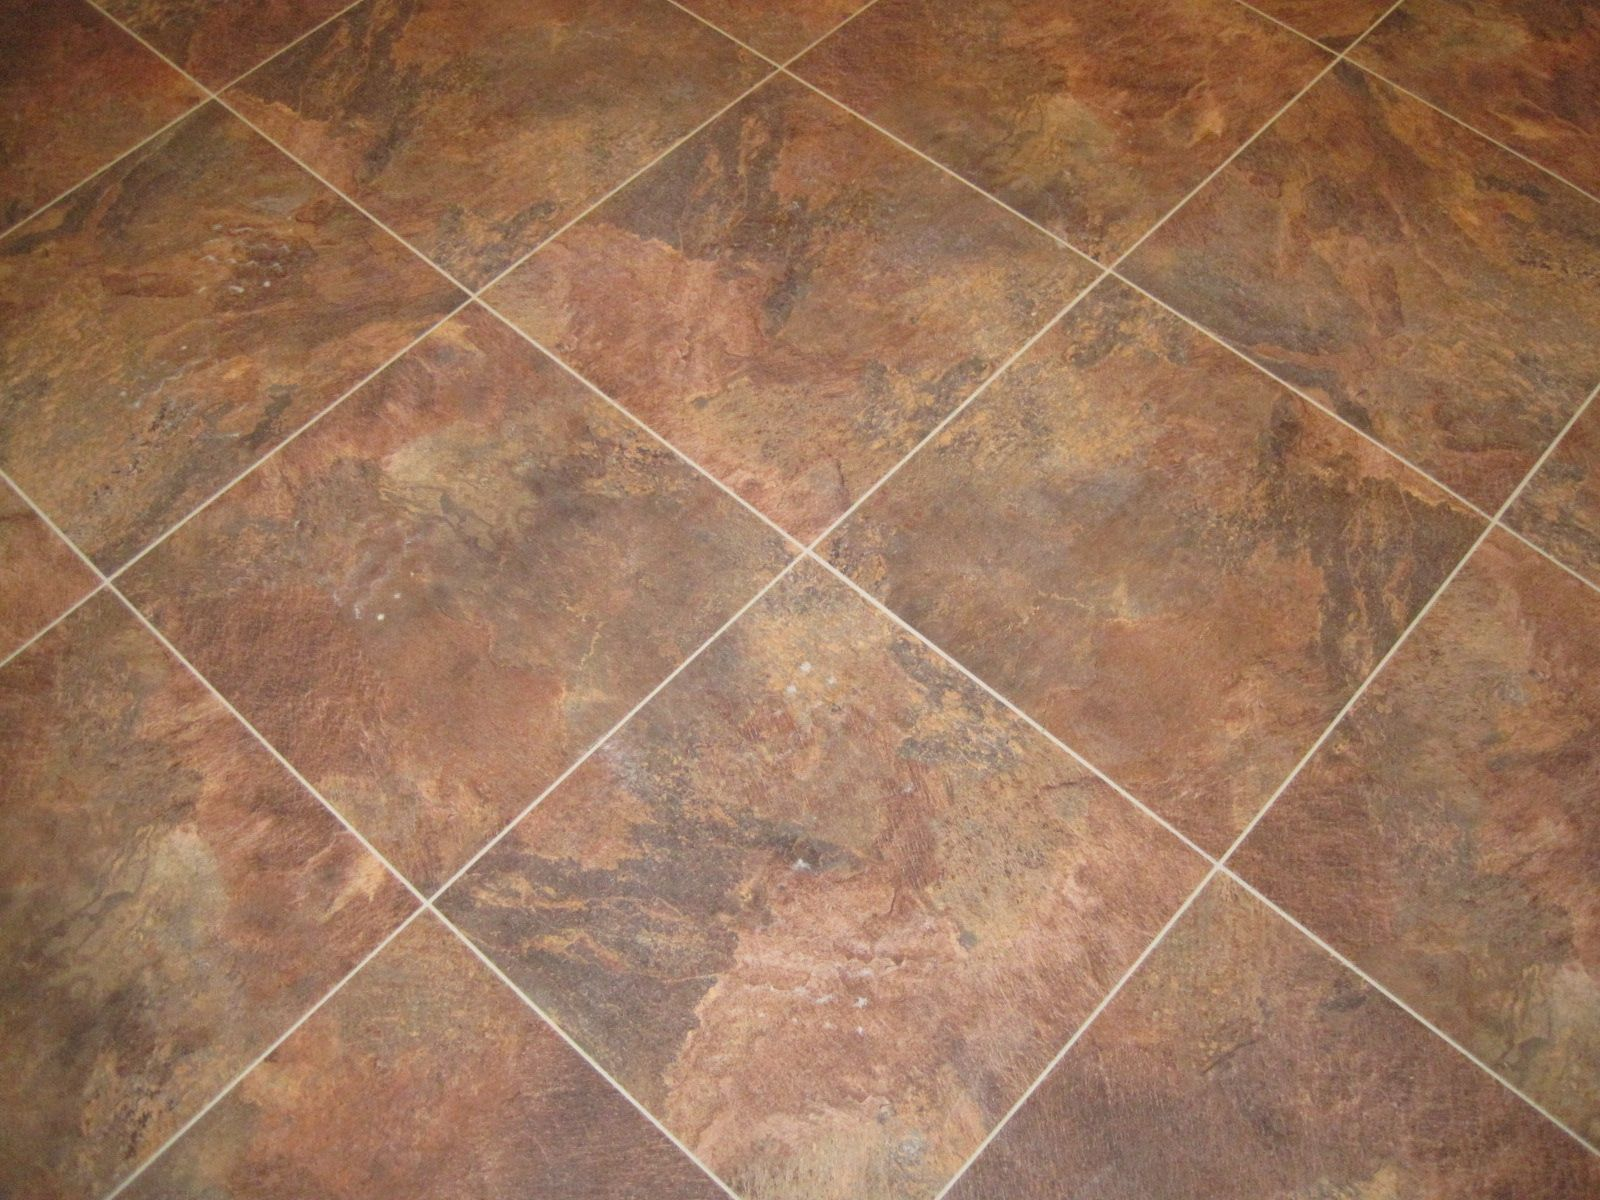 Flooring plans | Kitchen floors, Vinyl tiles and Tile flooring